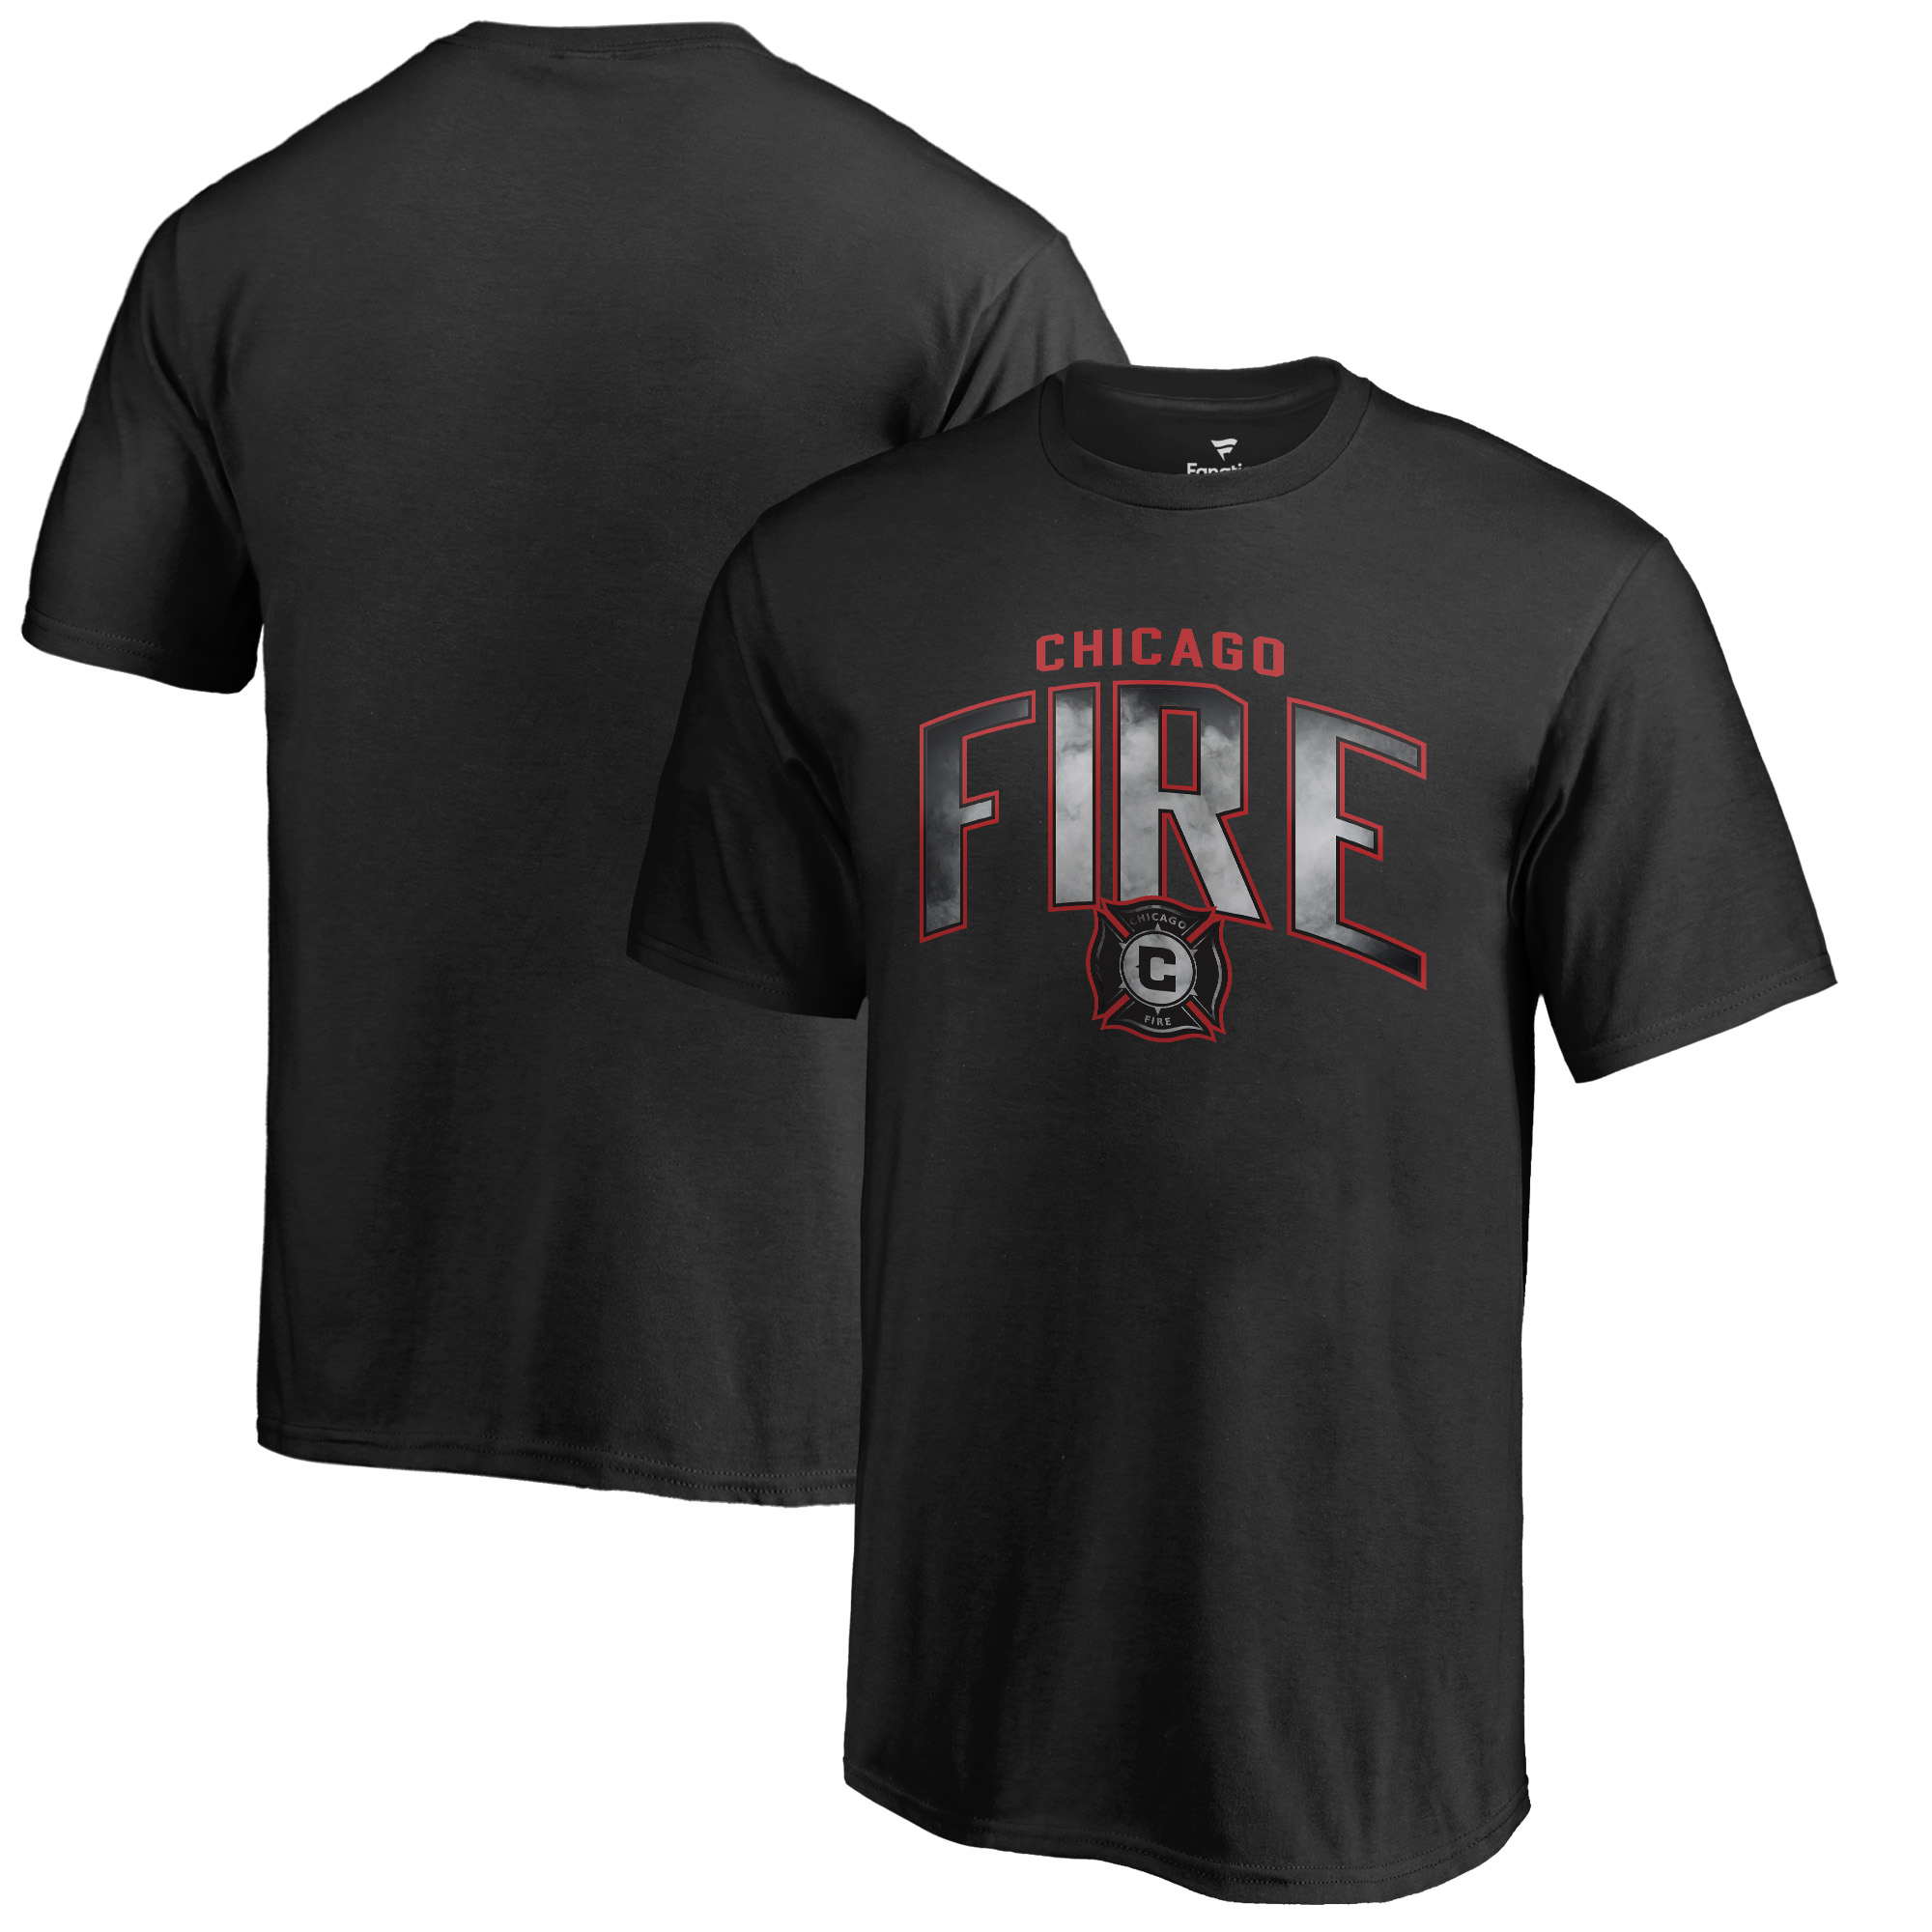 Chicago Fire Fanatics Branded Youth Black Arch Smoke T-Shirt